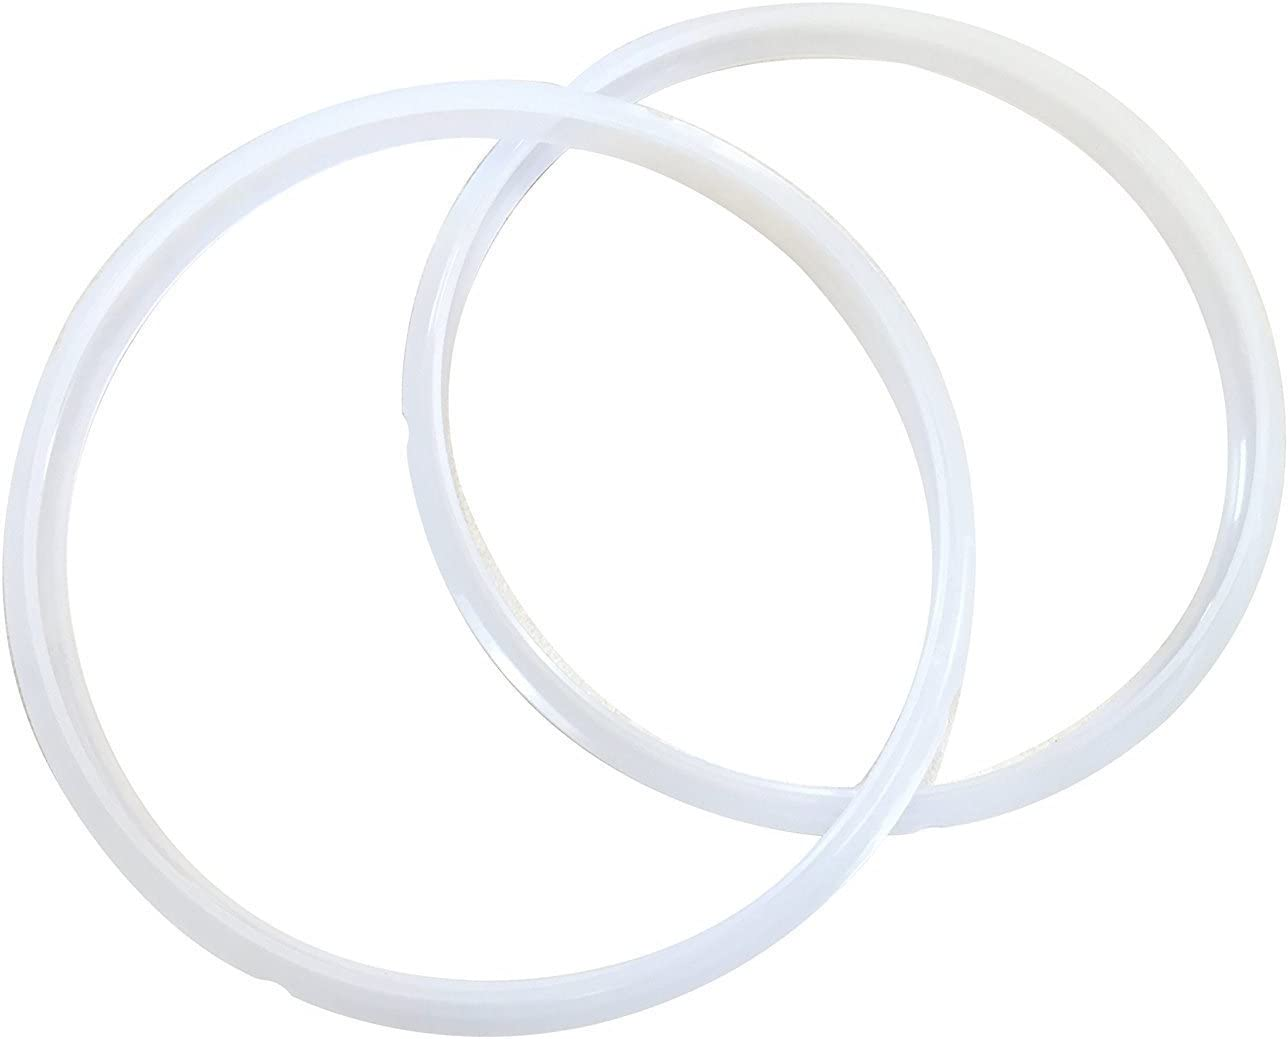 """""""TWIN PACK: 2 Sealing Rings Compatible with Cuisinart Pressure Cooker Part CPC-SR600 for 6 Quart Cookers Including CPC-600 and CPC-900"""". These rings are not created or sold by Cuisinart."""